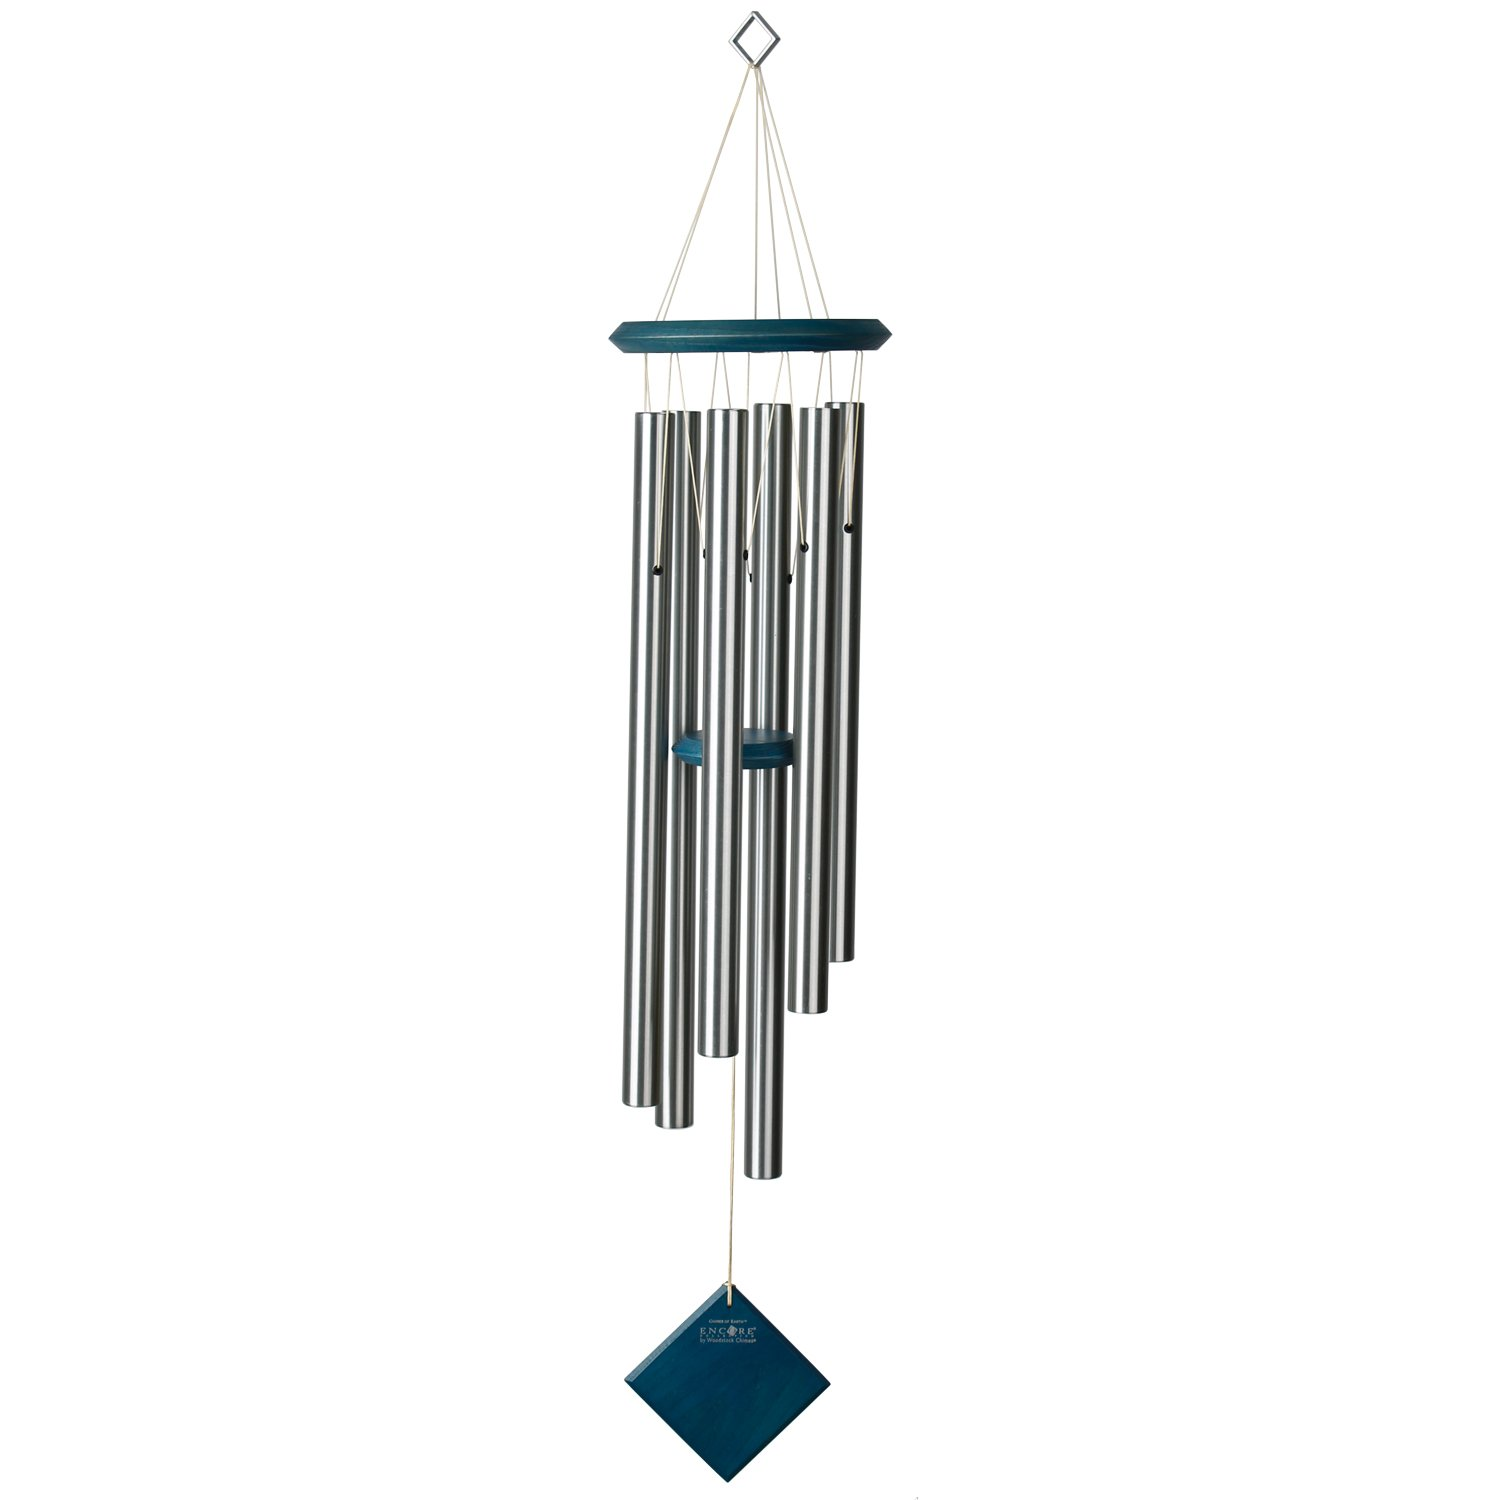 Encore Collection by Woodstock Chimes - The ORIGINAL Guaranteed Musically Tuned Chime, Chimes of Earth - Blue Wash